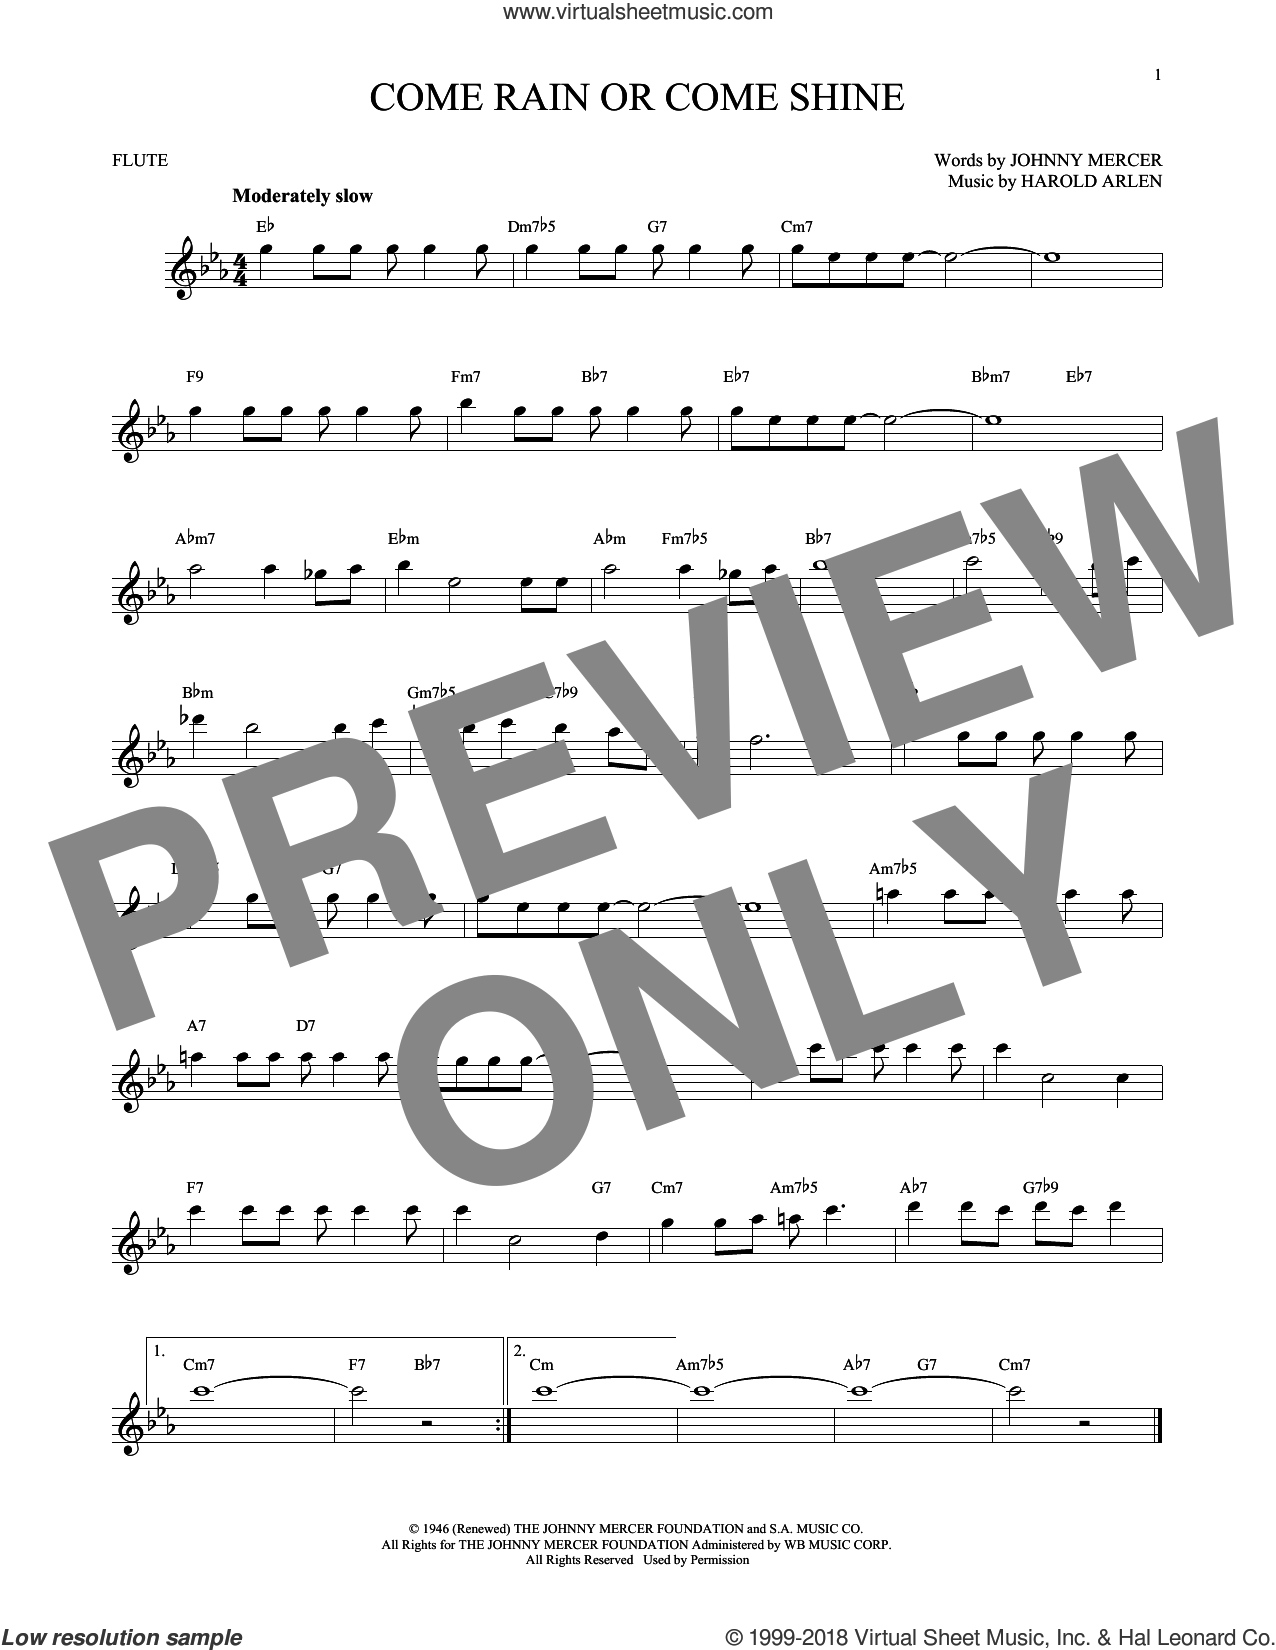 Come Rain Or Come Shine sheet music for flute solo by Johnny Mercer and Harold Arlen, intermediate skill level